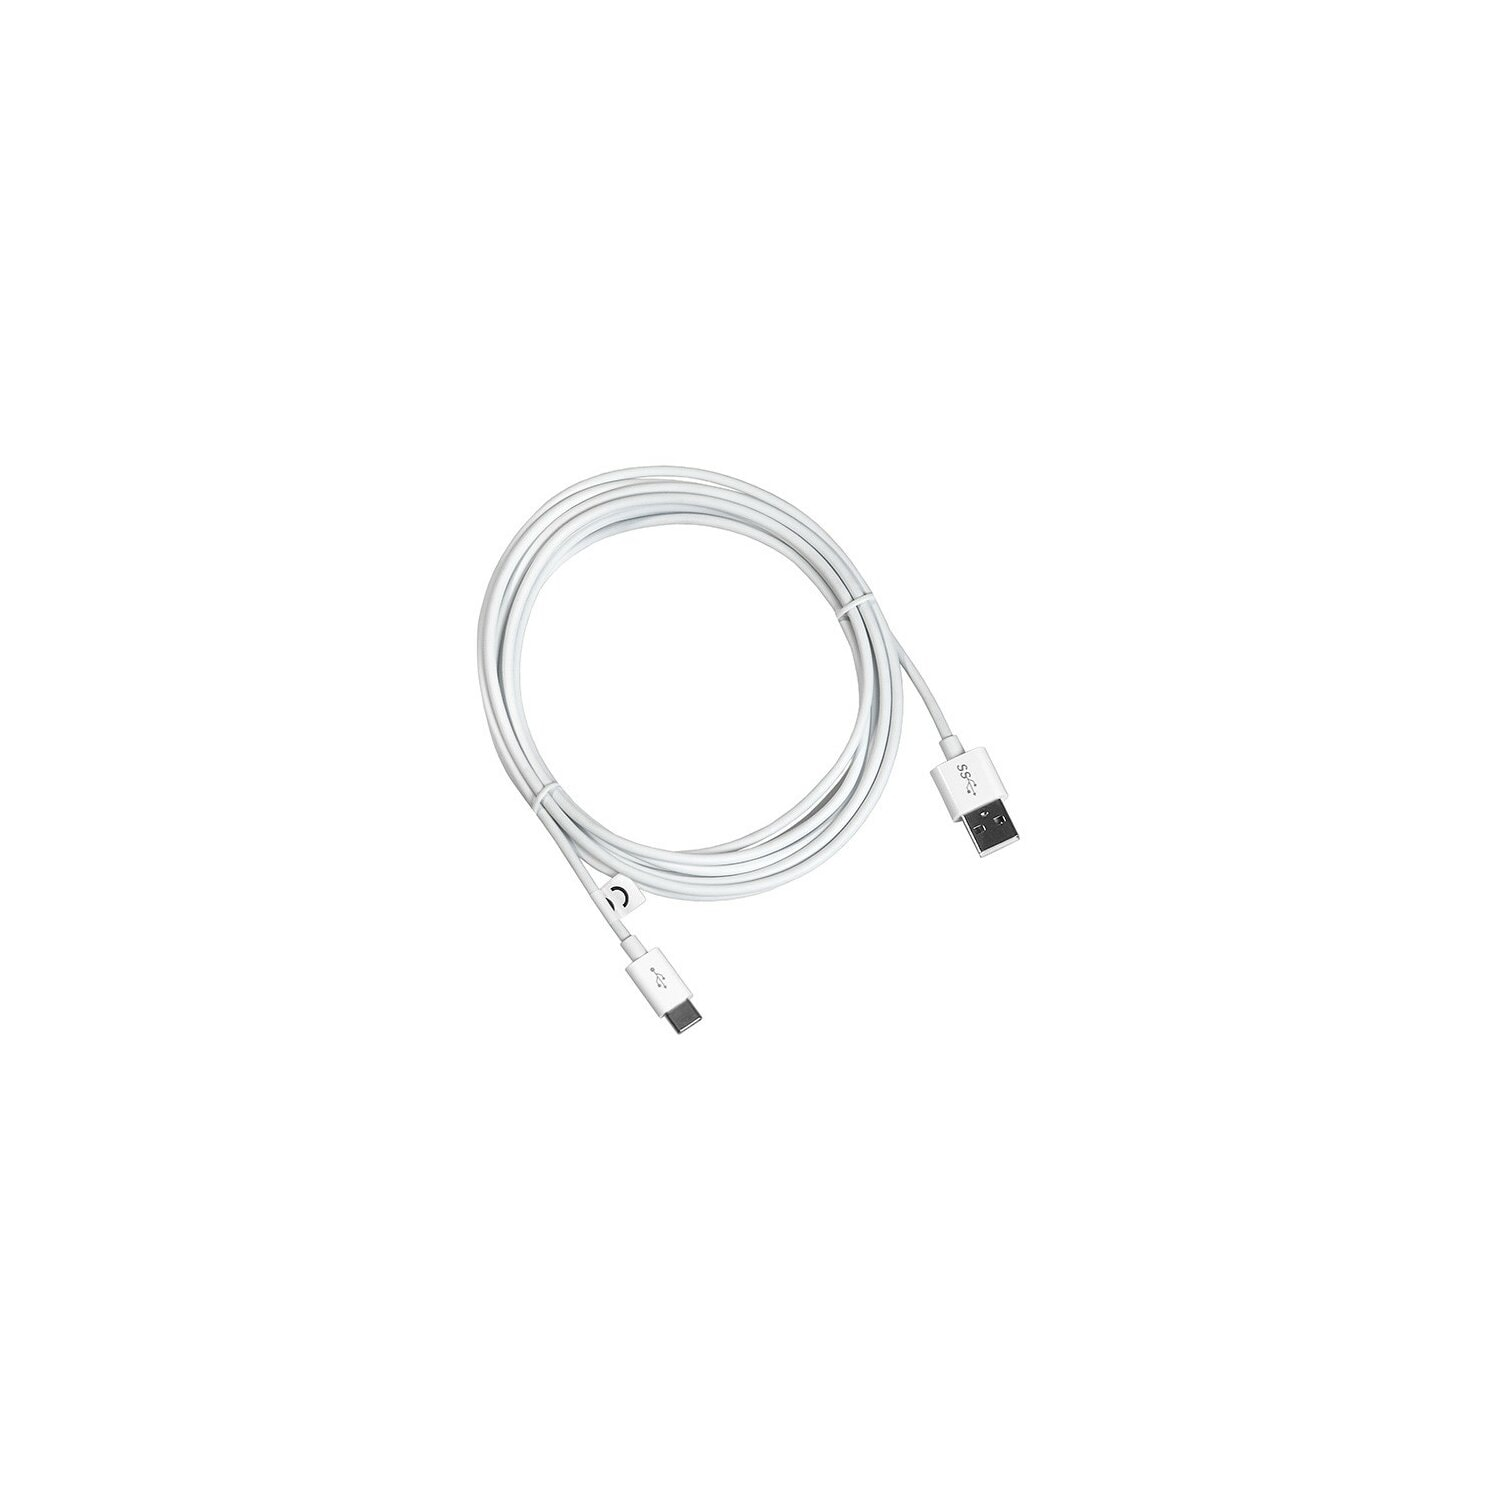 Kabel TRACER USB 2.0 TYPE-C A Male - C Male 1.5m